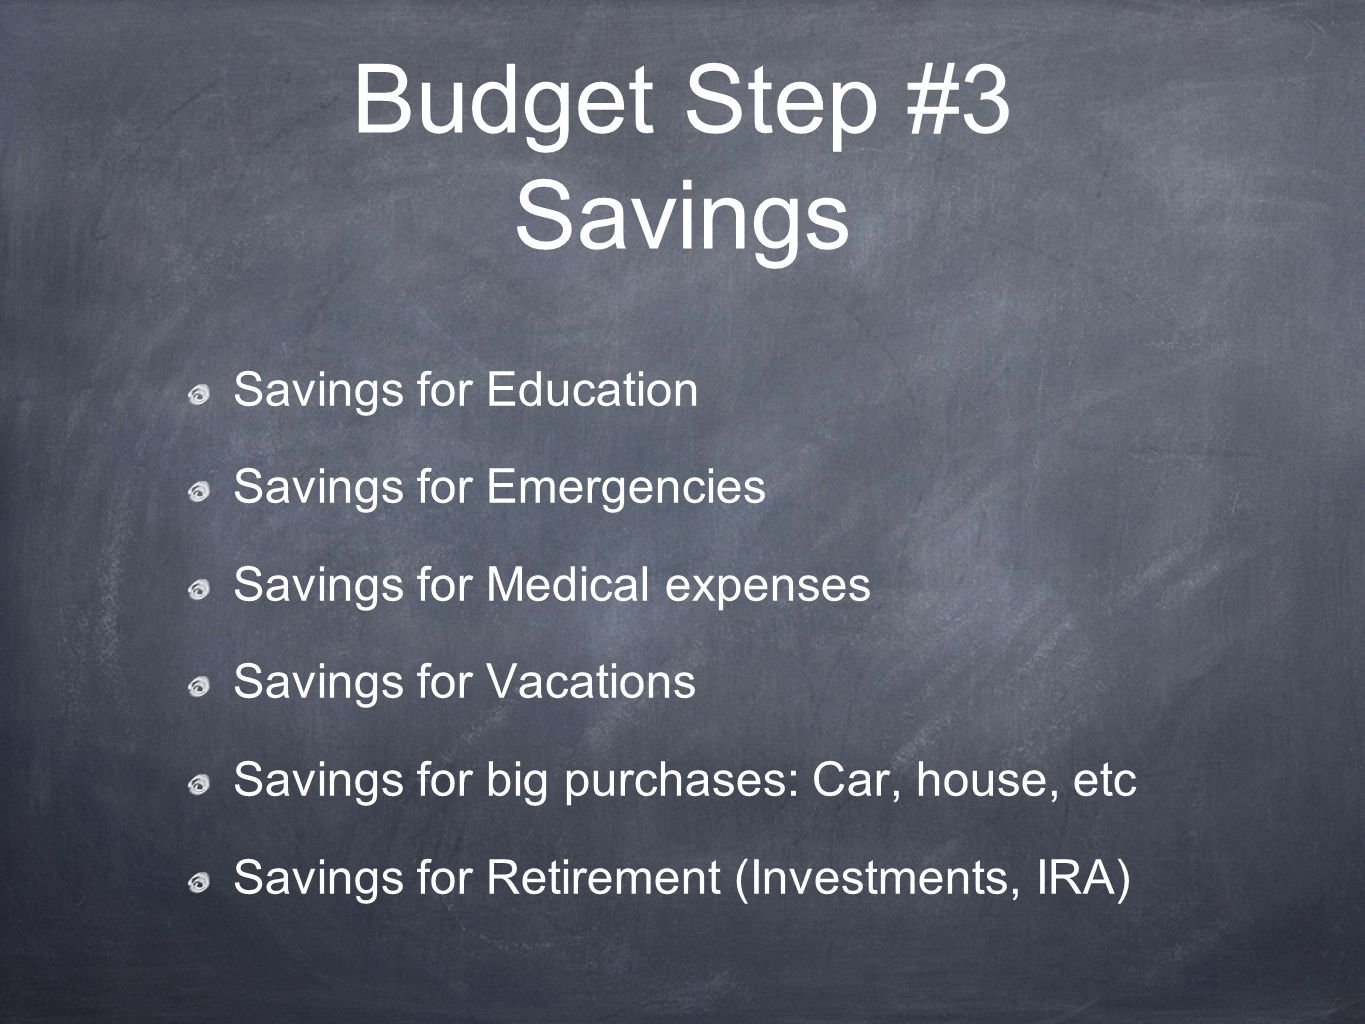 Budget Step #3 Savings Savings for Education Savings for Emergencies Savings for Medical expenses Savings for Vacations Savings for big purchases: Car, house, etc Savings for Retirement (Investments, IRA)